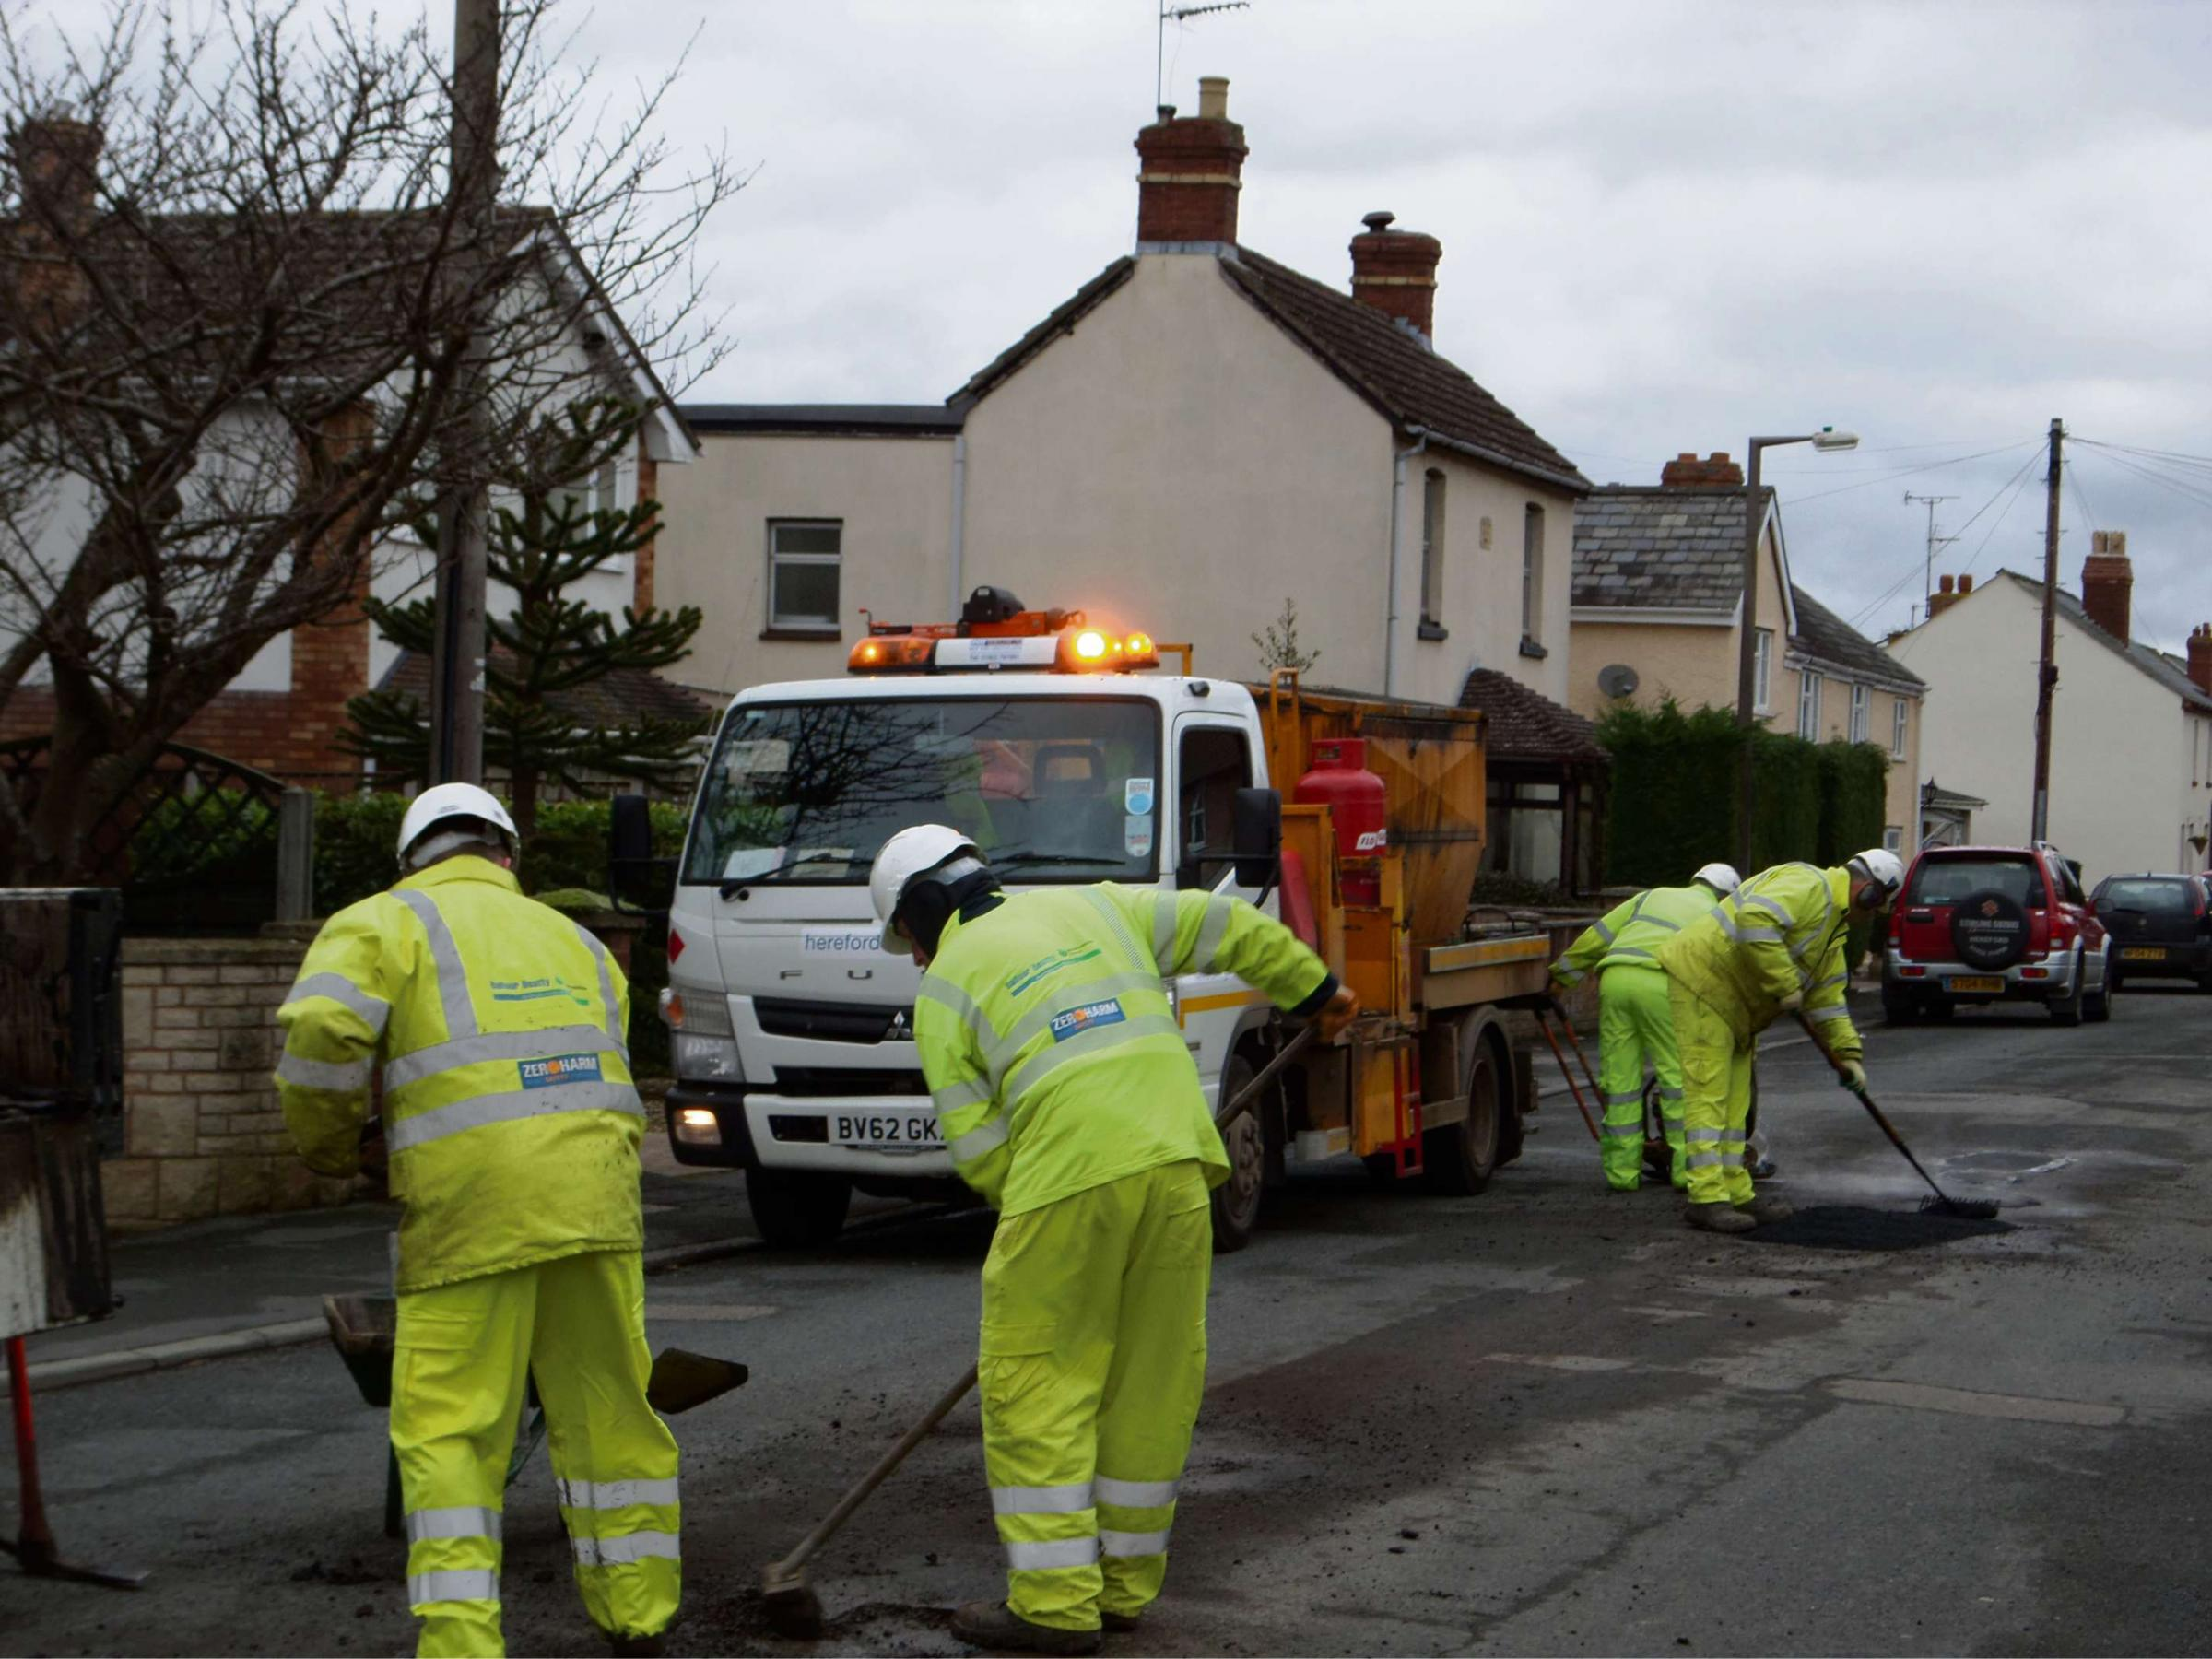 Potholes being repaired in Westfields, Hereford, by contractors as part of a £3.5m bid to repair the county's damaged roads.